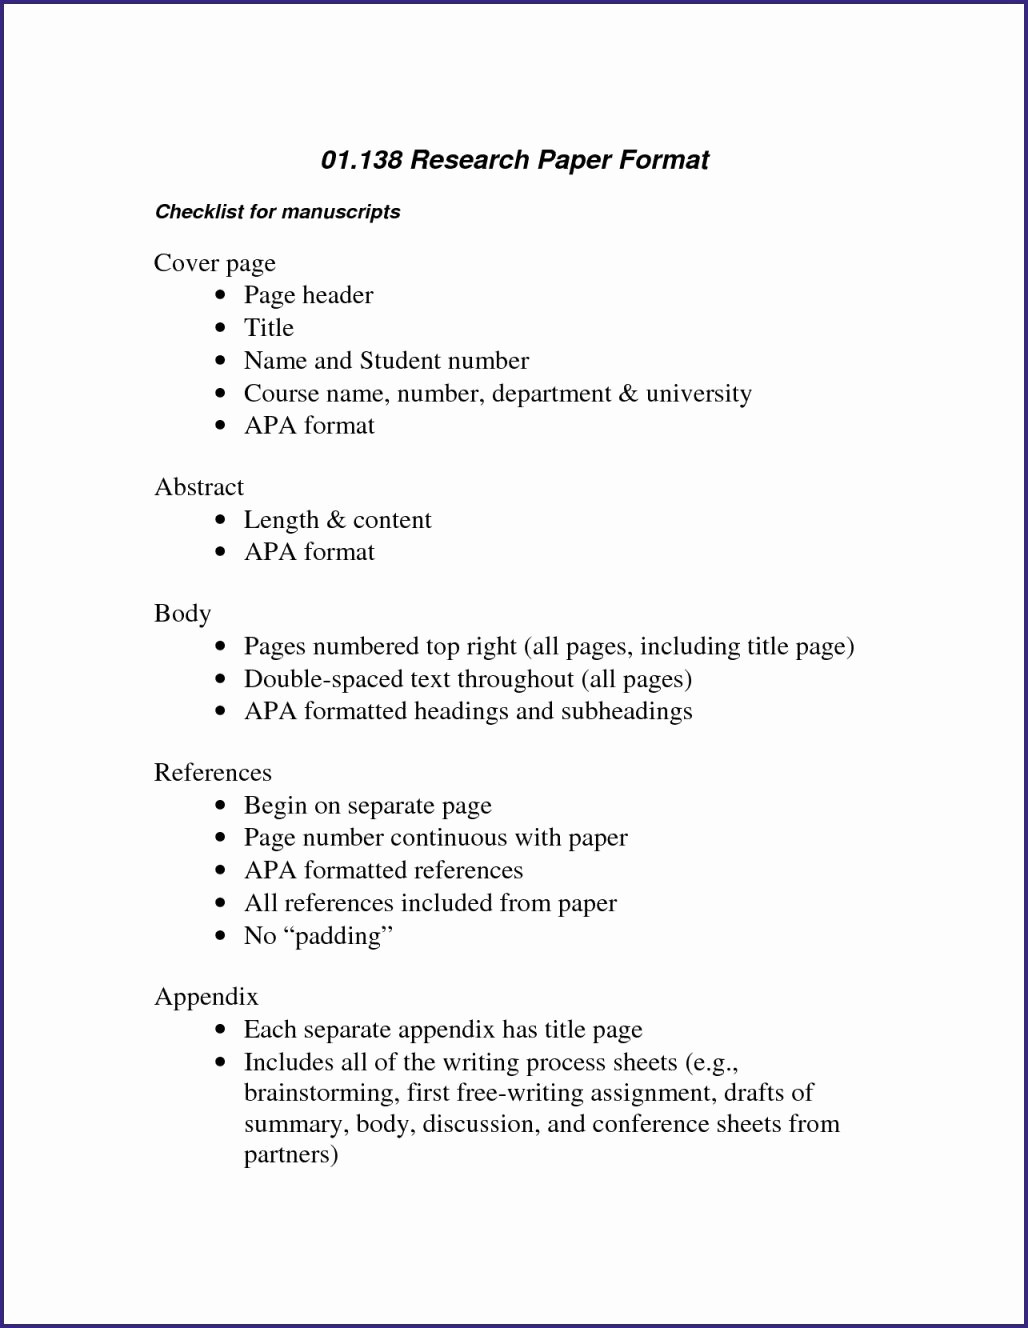 014 Research Paper Abstract For Apa Style Template Lovely Beautiful Super Example Wondrous Of An A In Format Writing Full